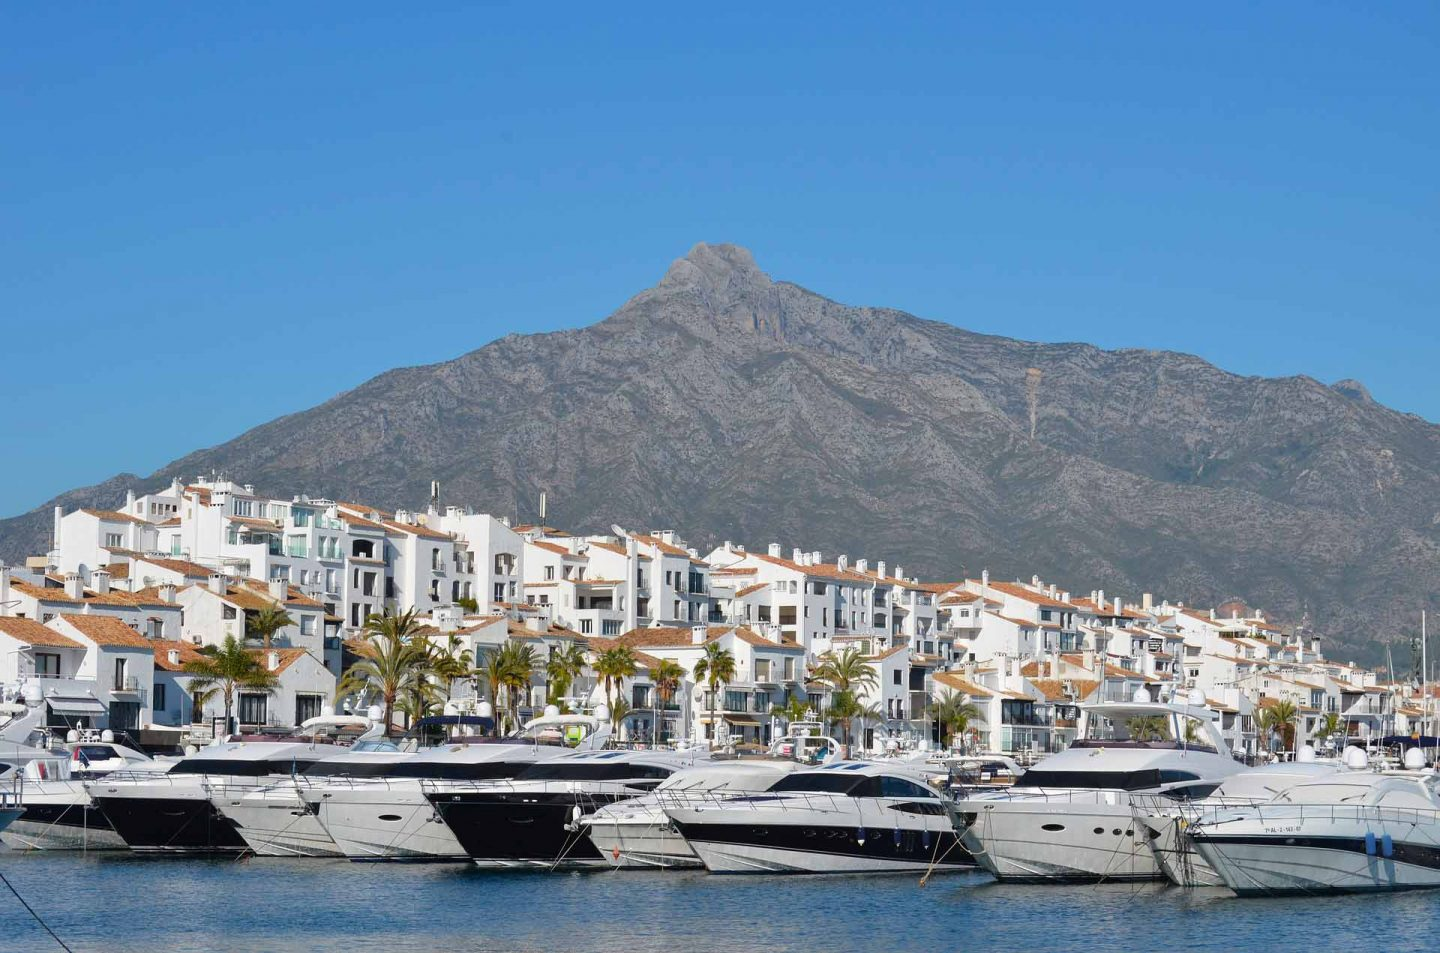 Marbella guide: things to see and do suggested by a local